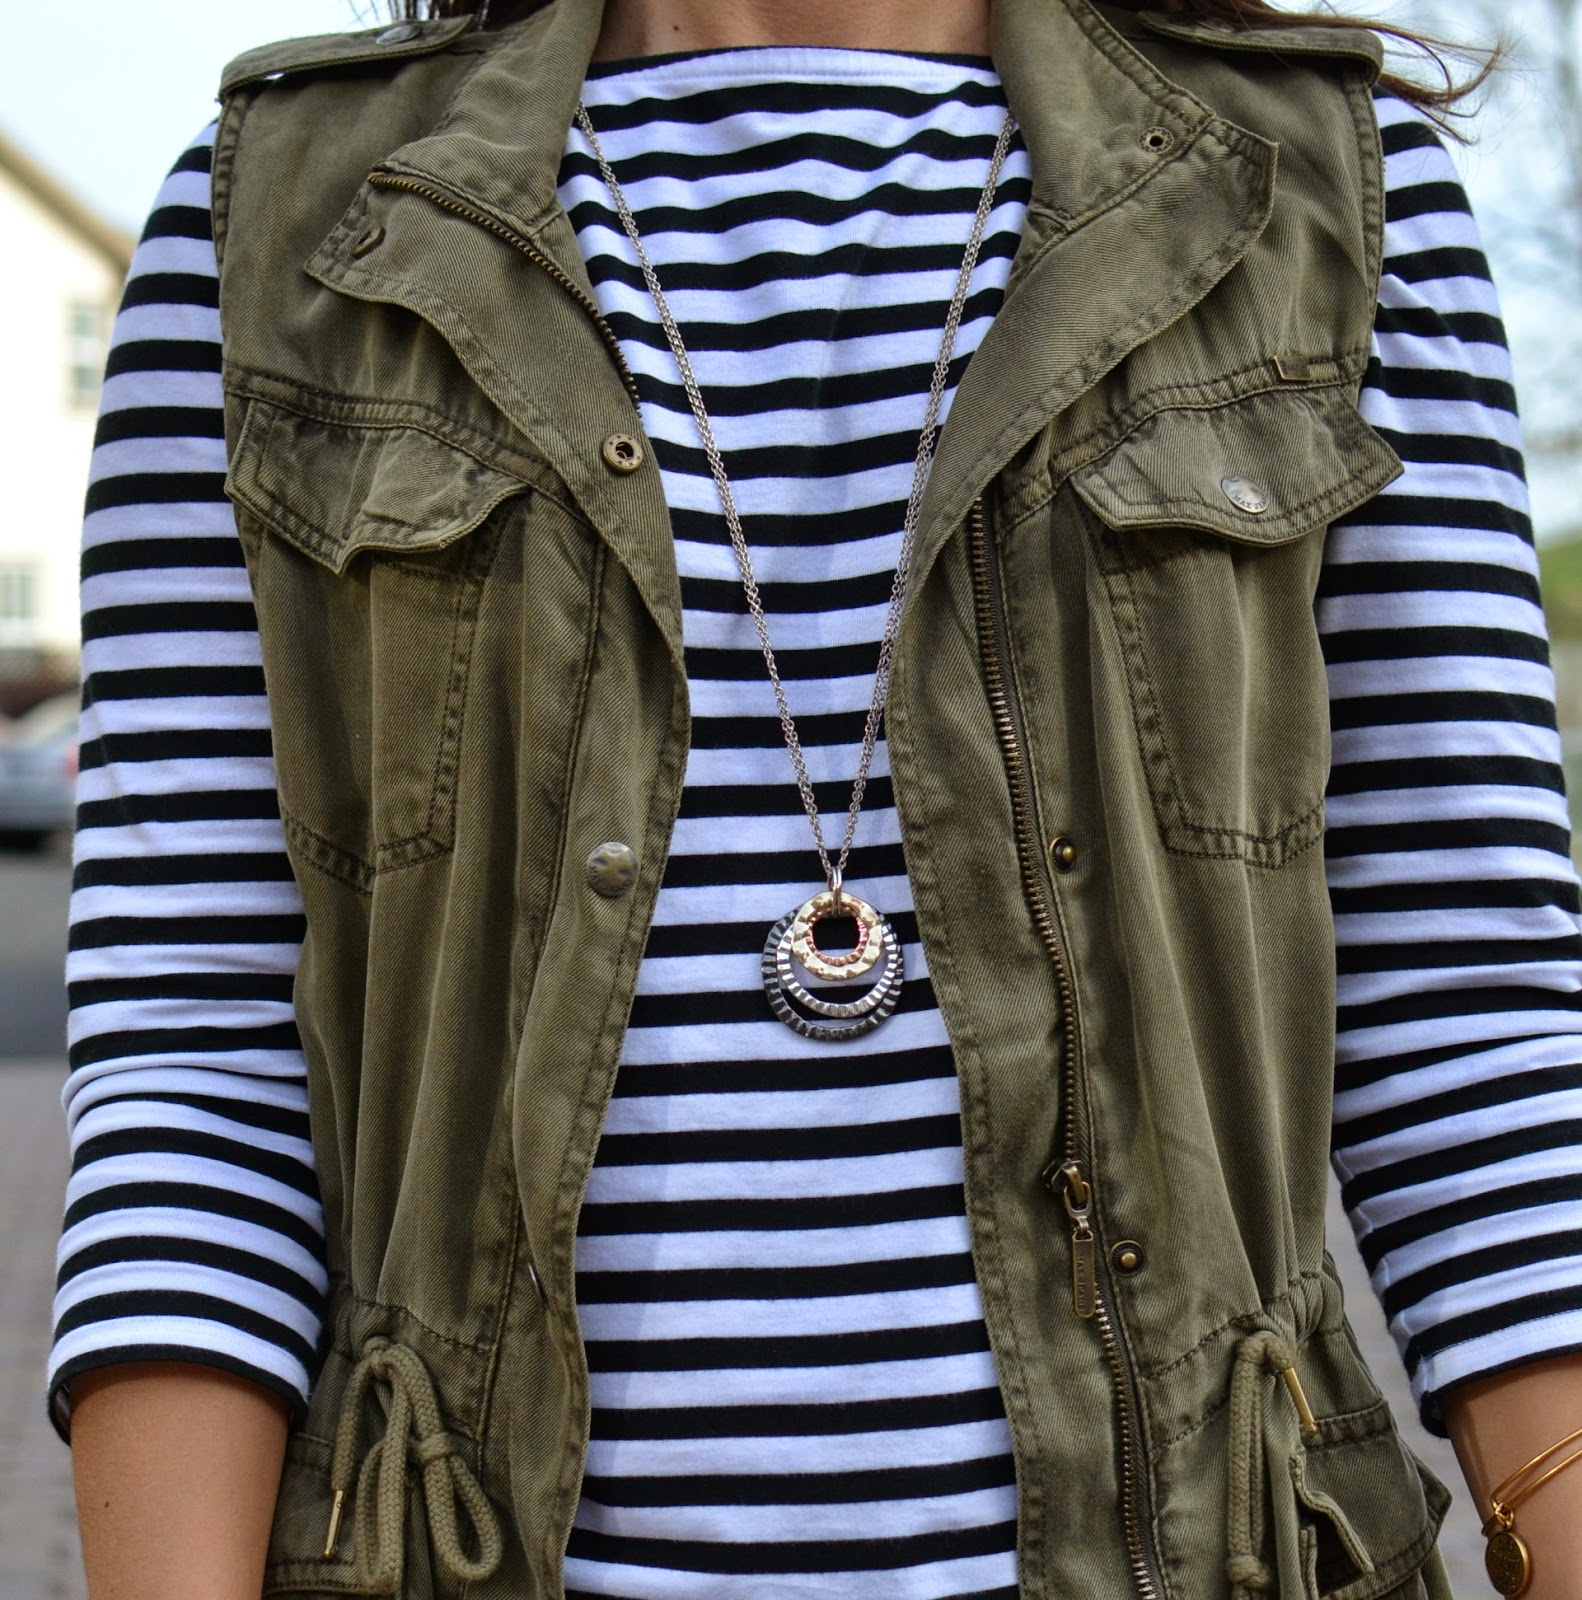 Stripes and Cargo Military Vest OUtfit